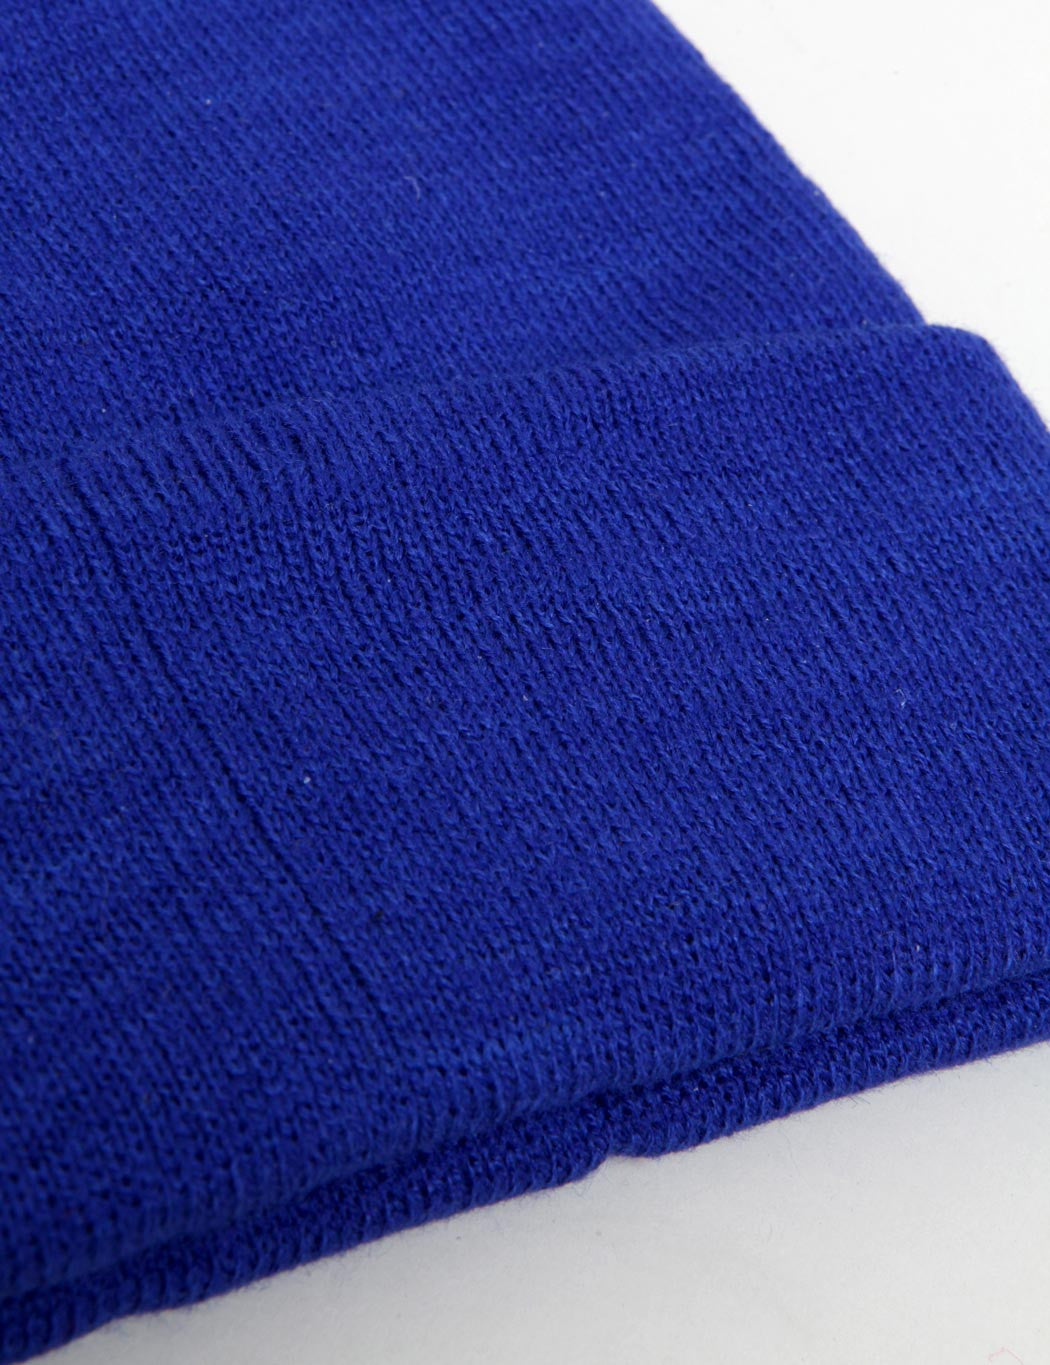 UE Skate Roll Cuff Beanie Hat - Royal Blue